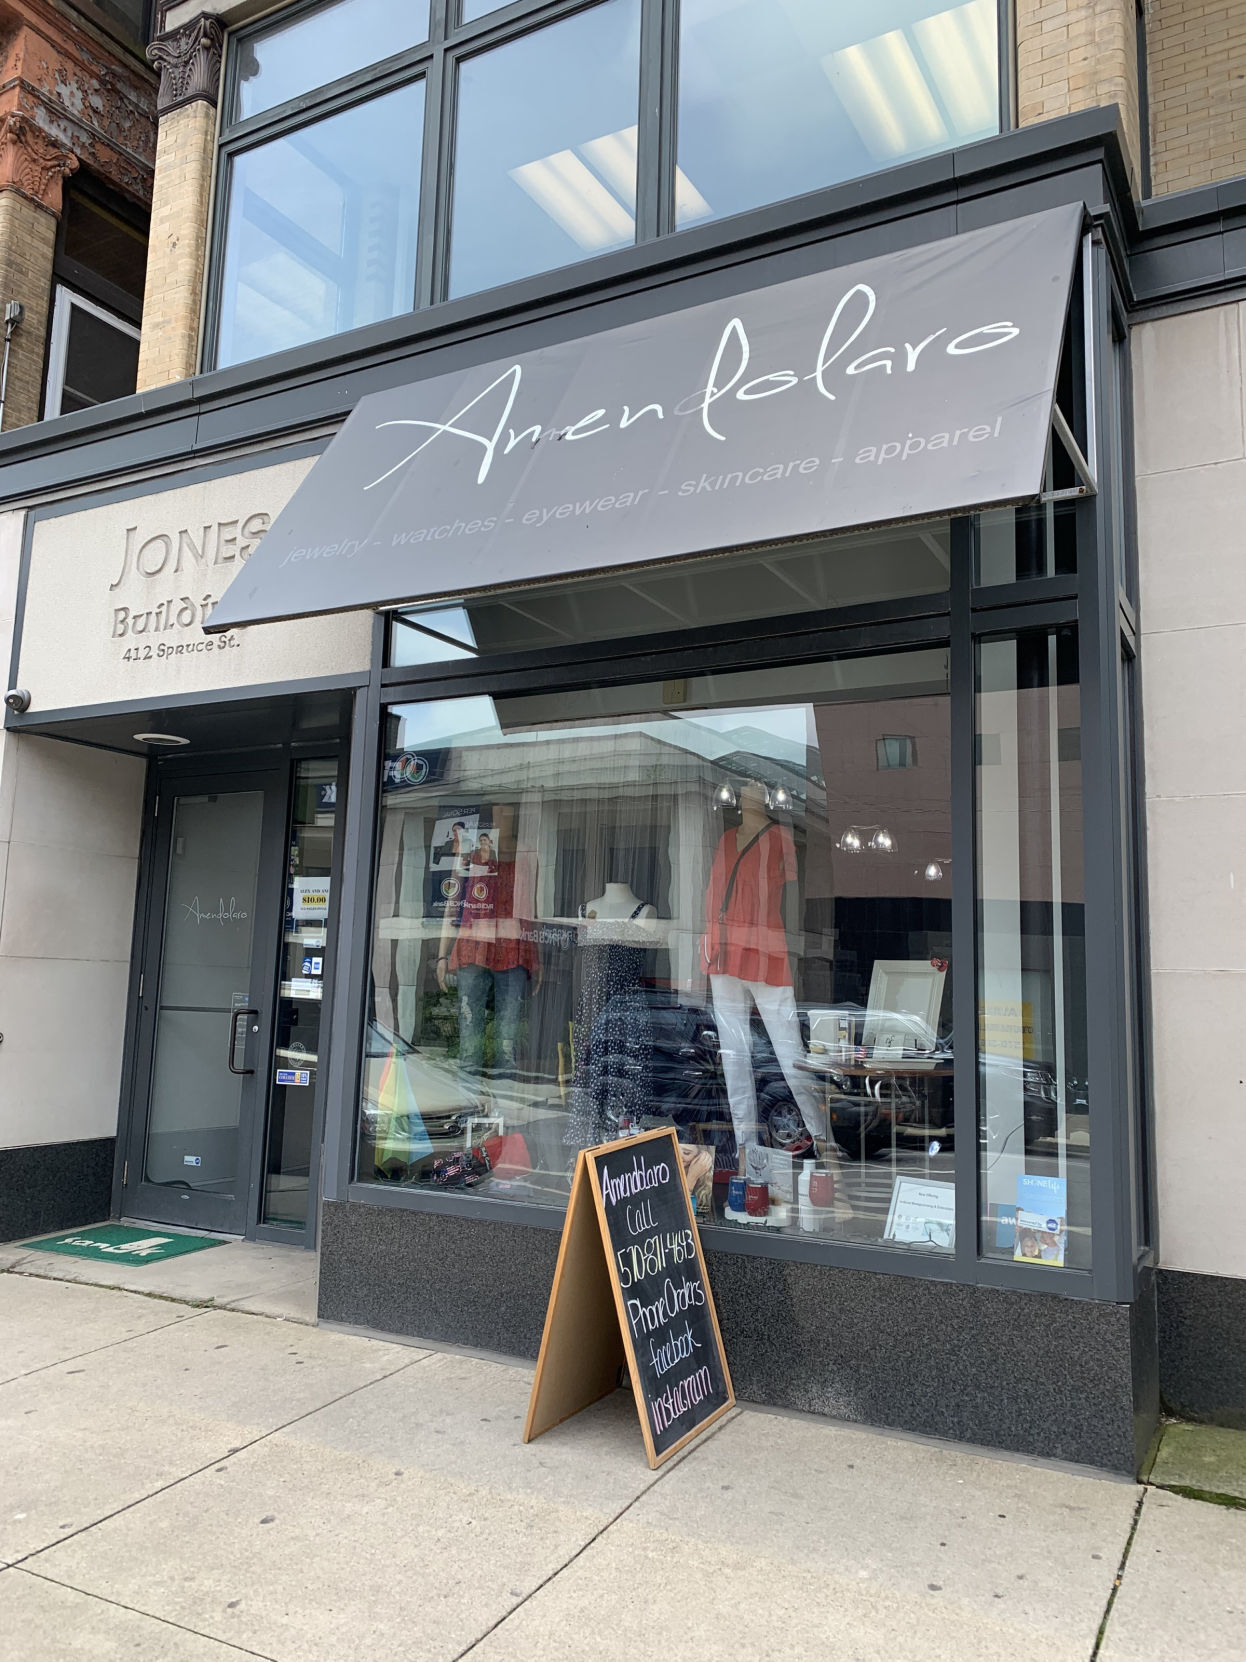 Amendolaro clothing and gift shop on Spruce Street in Scranton o